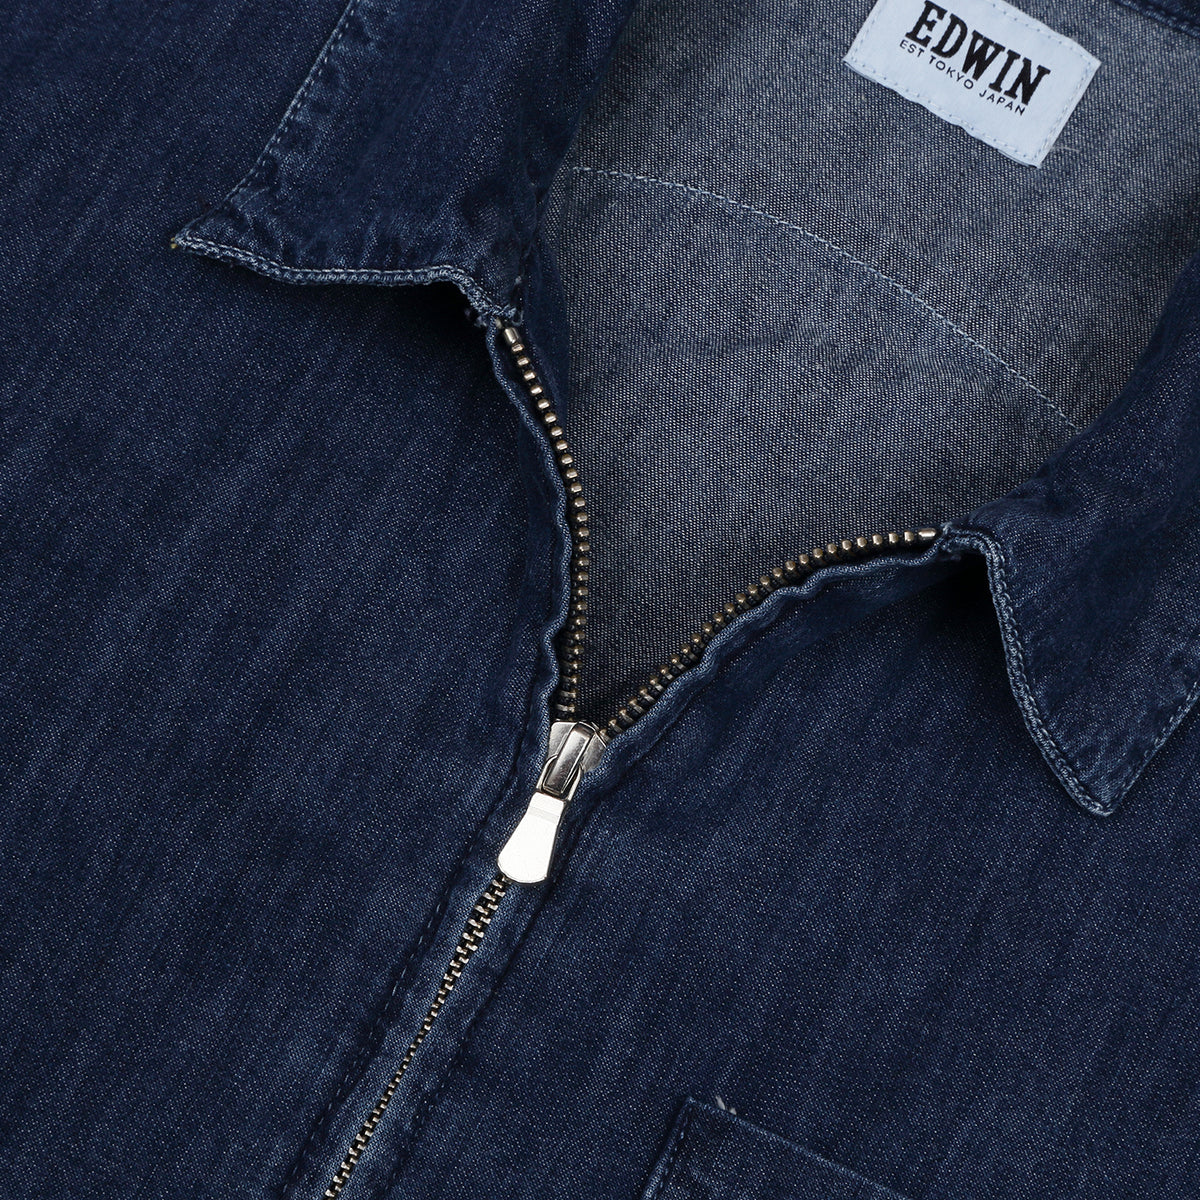 EDWIN - DEMO ZIP SHIRT - LIGHT BLUE DENIM